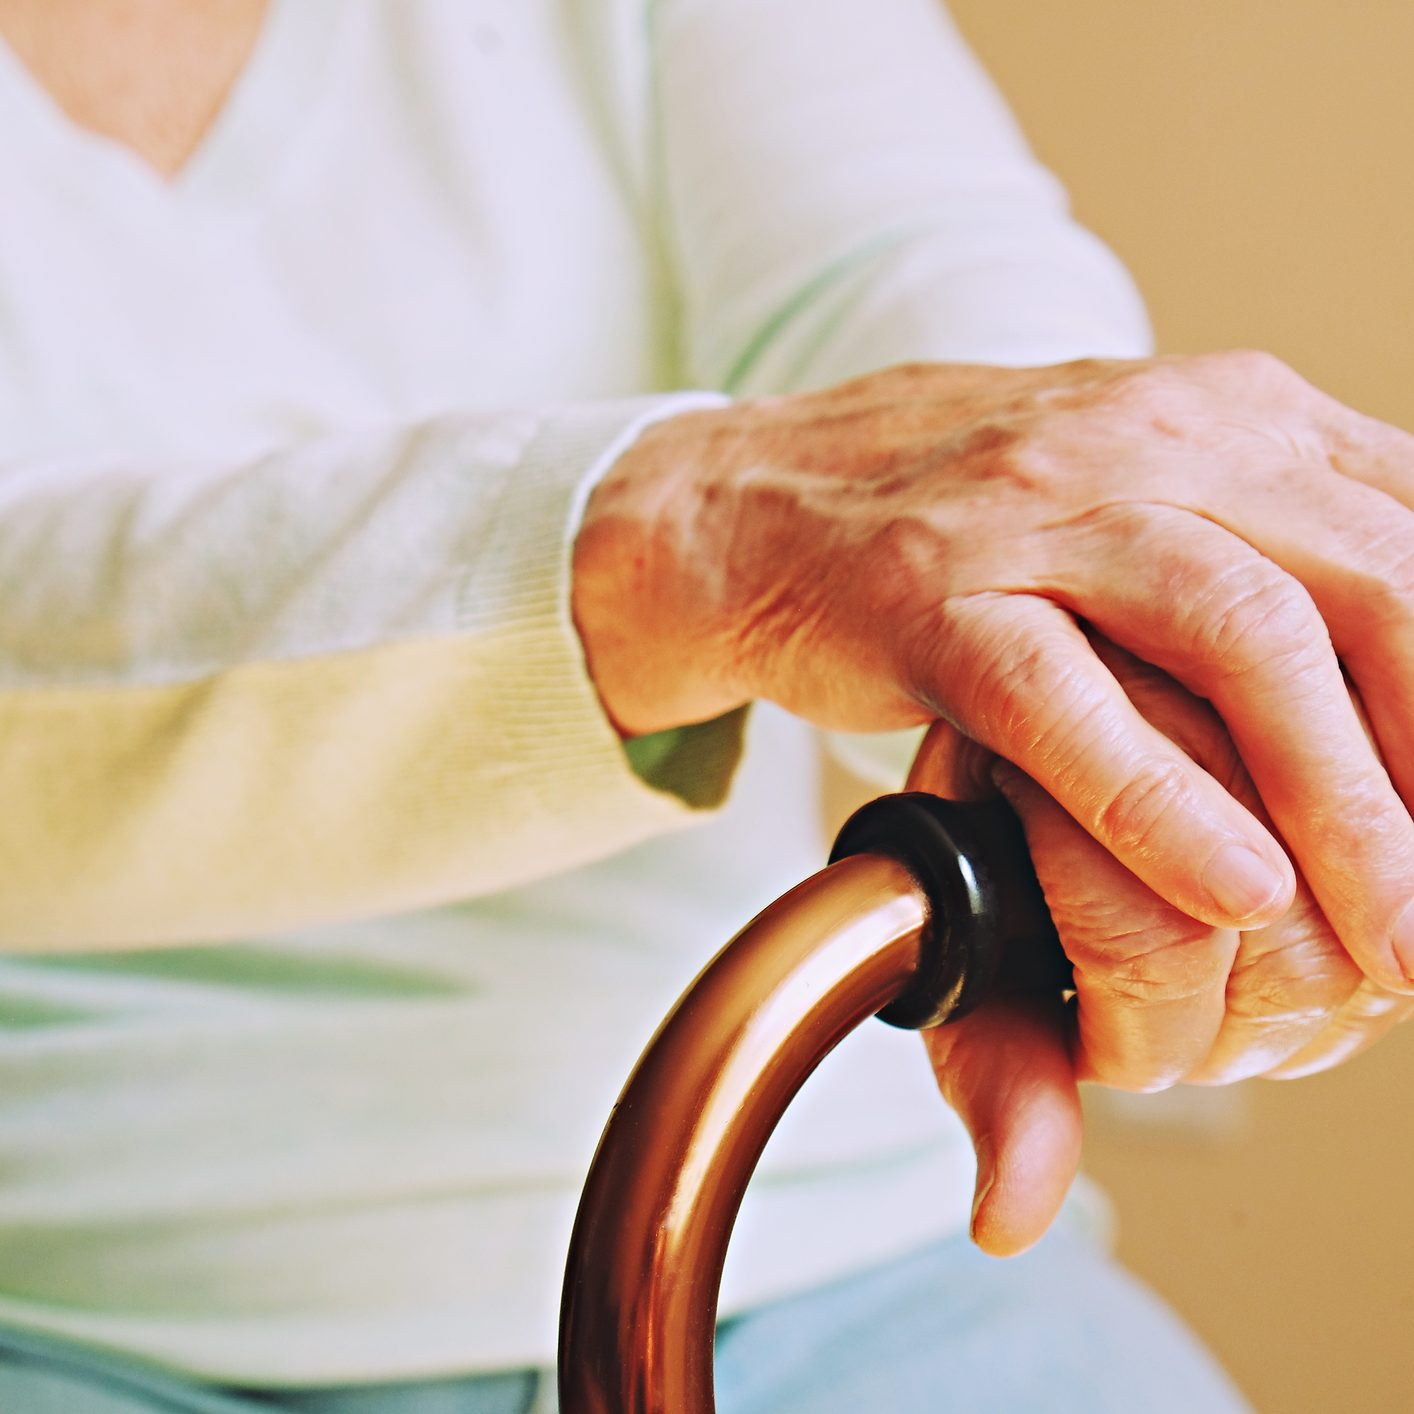 Elderly woman in nursing home, wrinkled hand with clearly visible veins holding walking quad cane. Old age senior lady arms with freckles lay on aid stick handle bar. Background, close up, copy space.